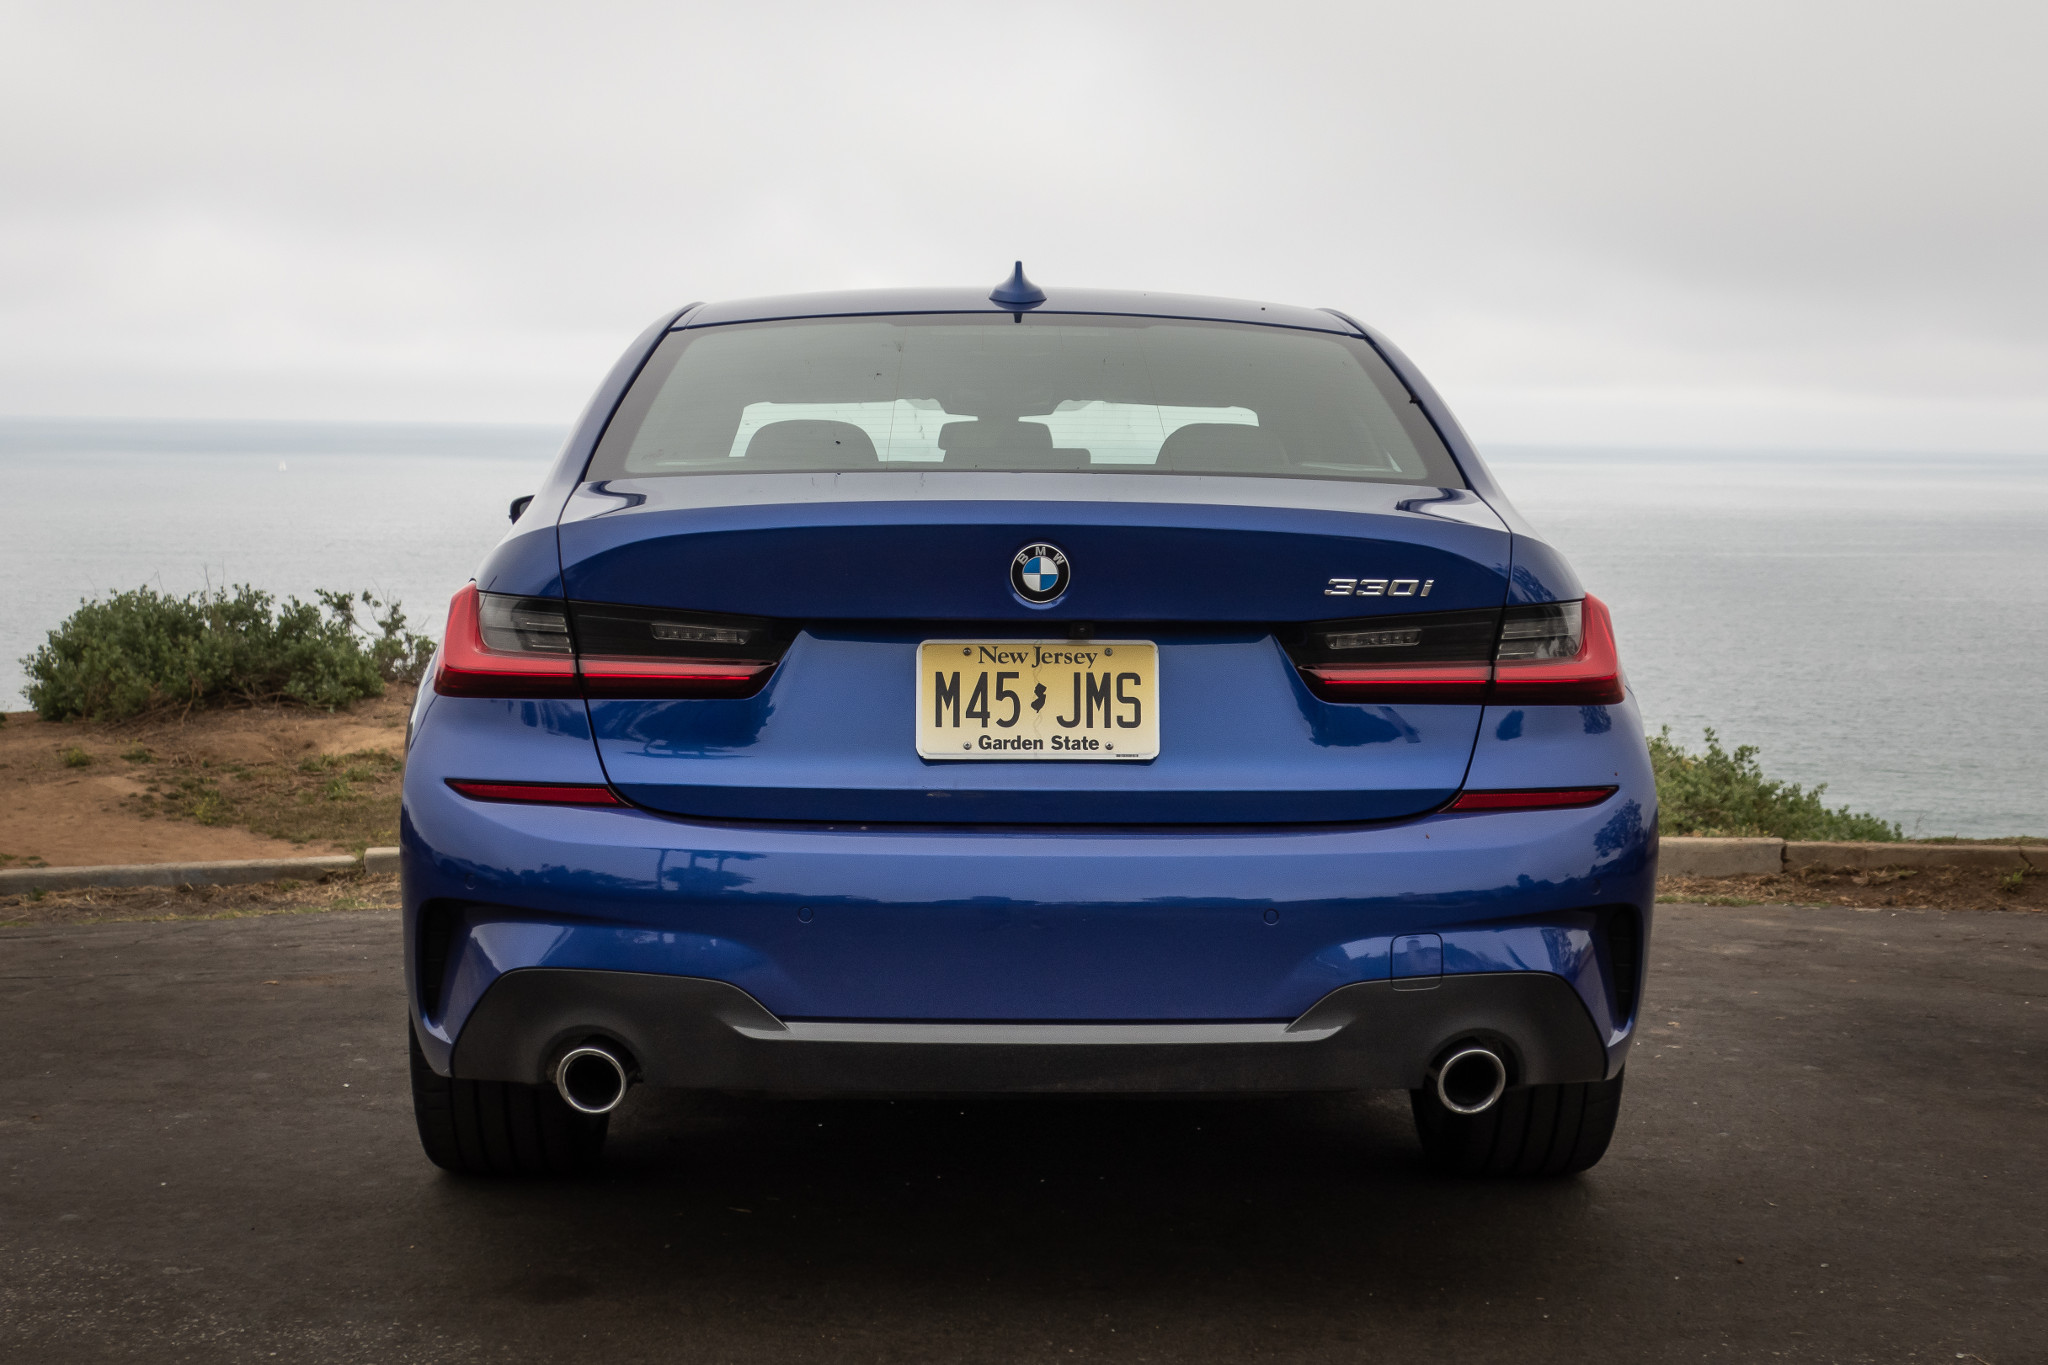 bmw-330i-2019-07-blue--exterior--rear.jpg